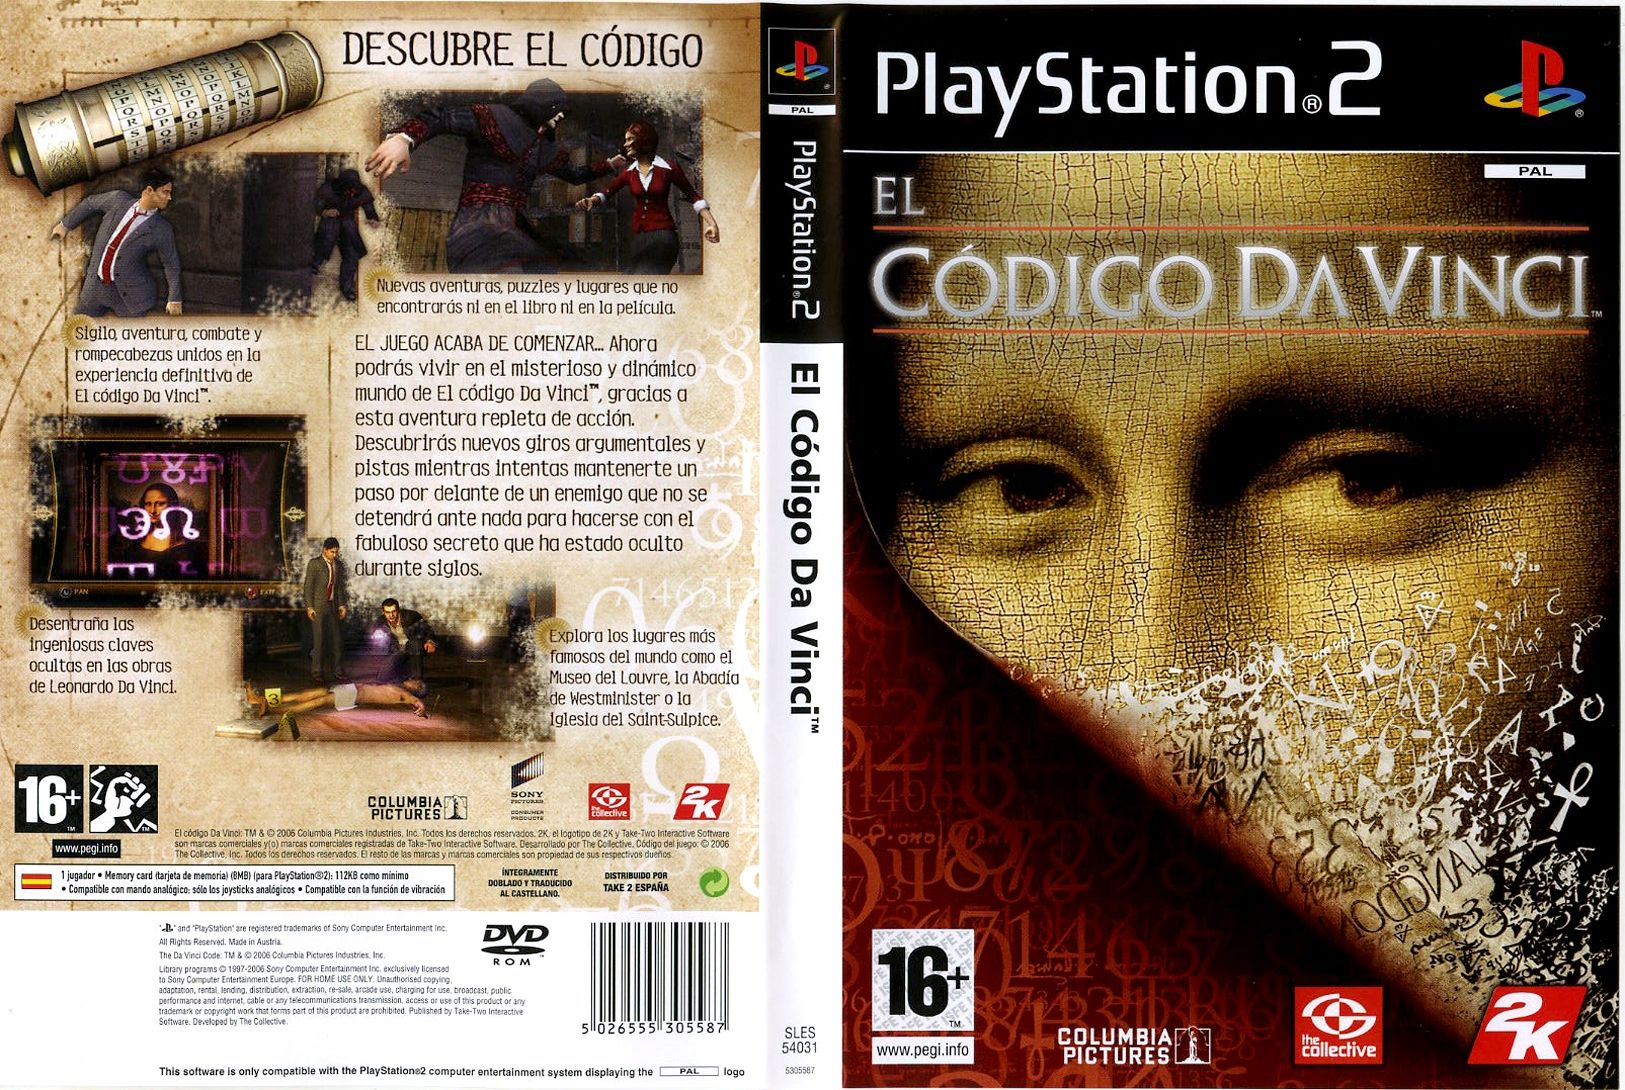 el codigo da vinci play station 2: